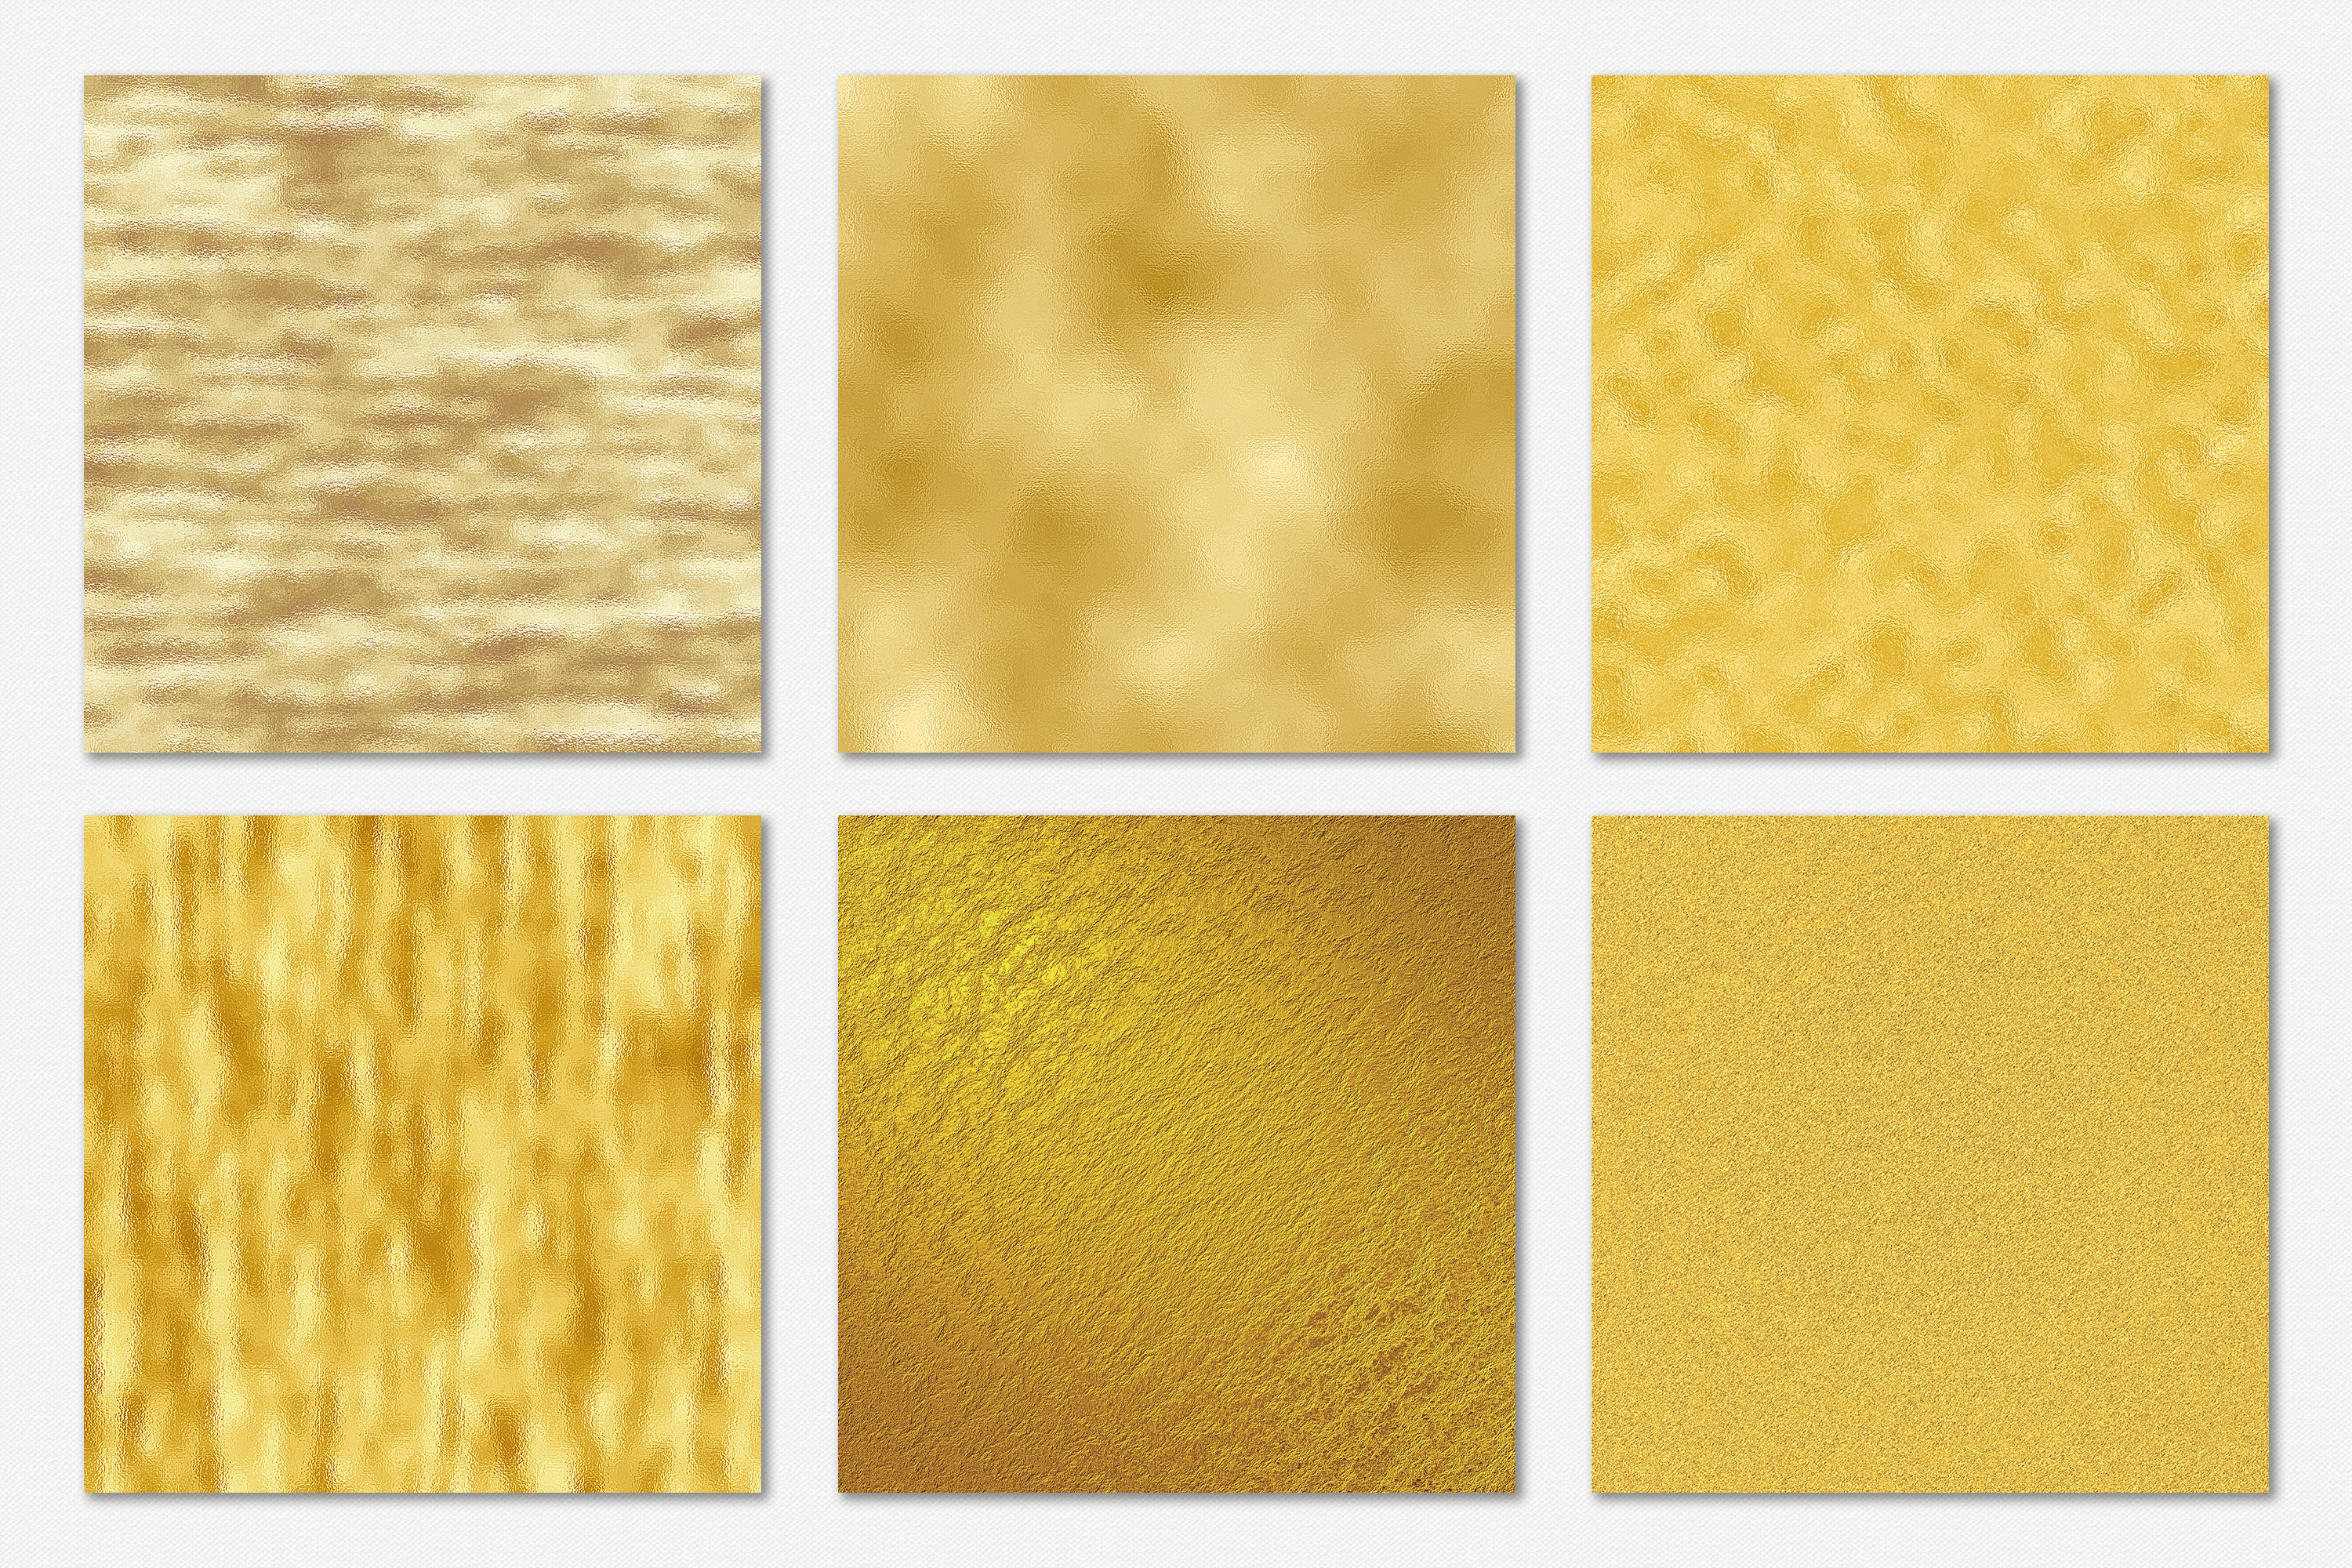 Gold Foil and Glitter Textures - Metallic Digital Papers example image 12